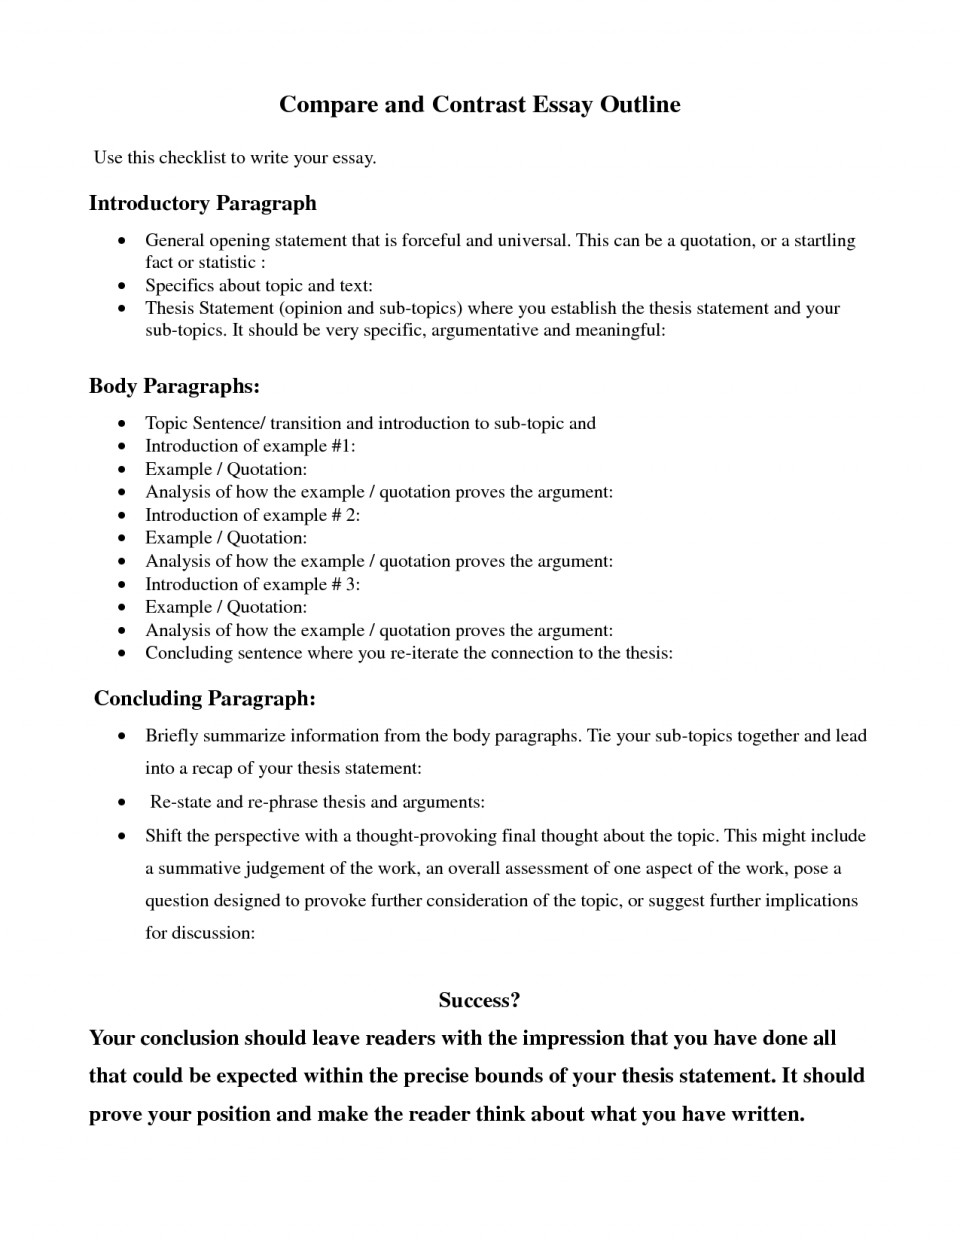 002 Compare And Contrast Essay Template Exceptional High School 5th Grade Example Vs College 960